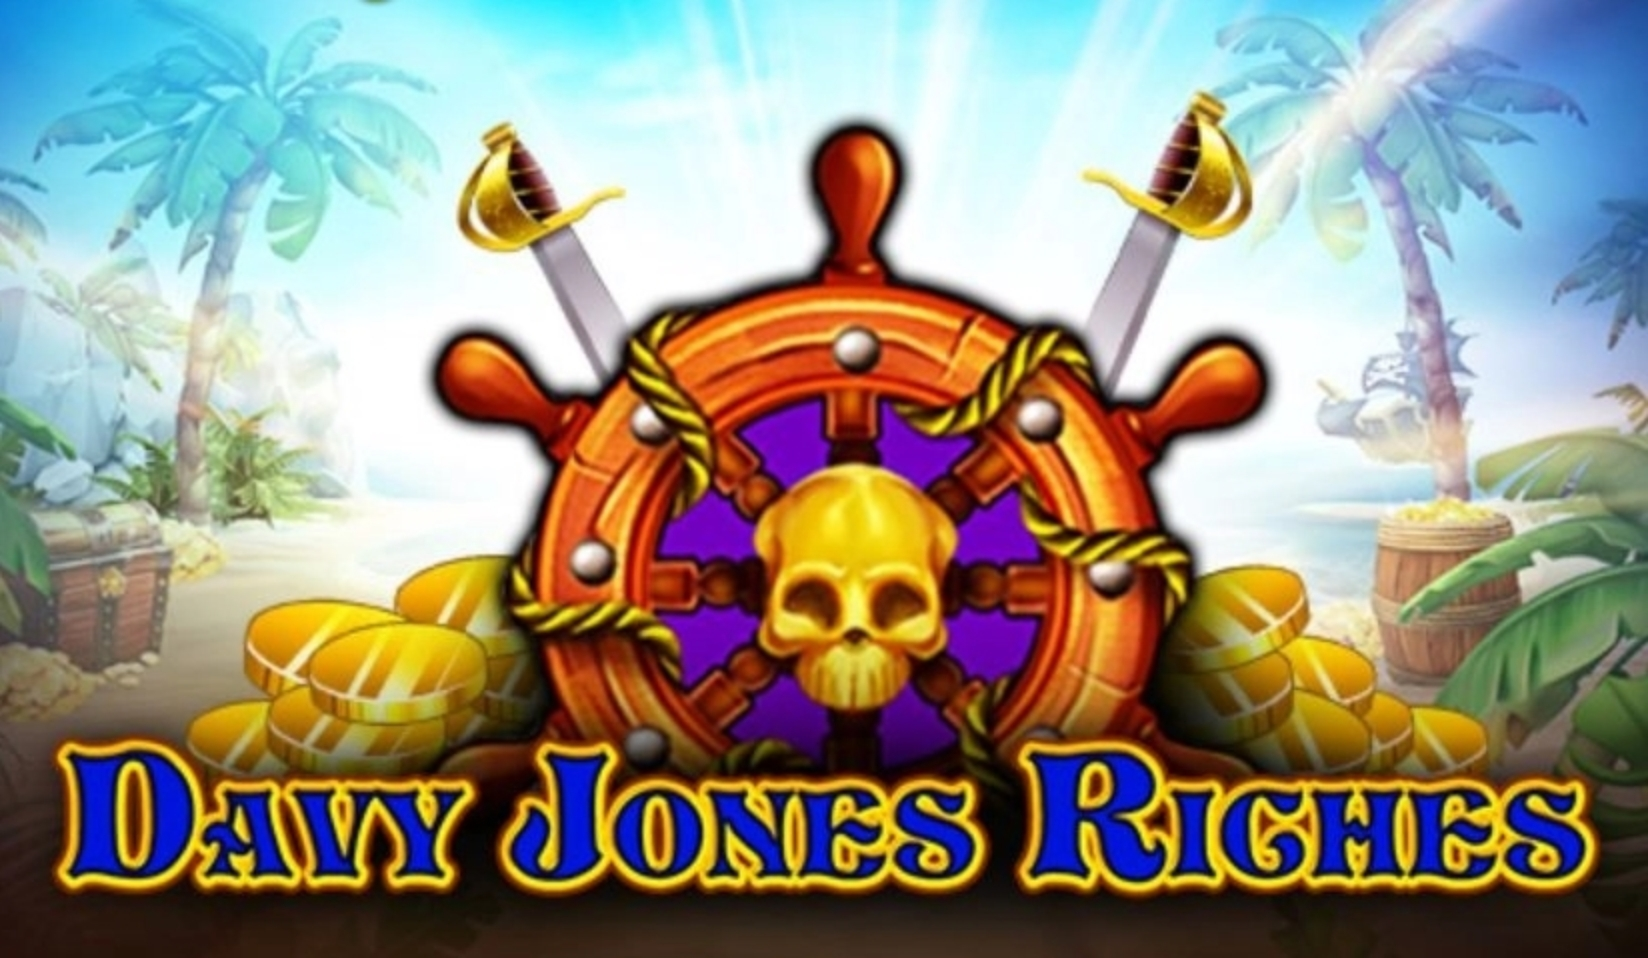 The Davy Jones Riches Online Slot Demo Game by The Stars Group